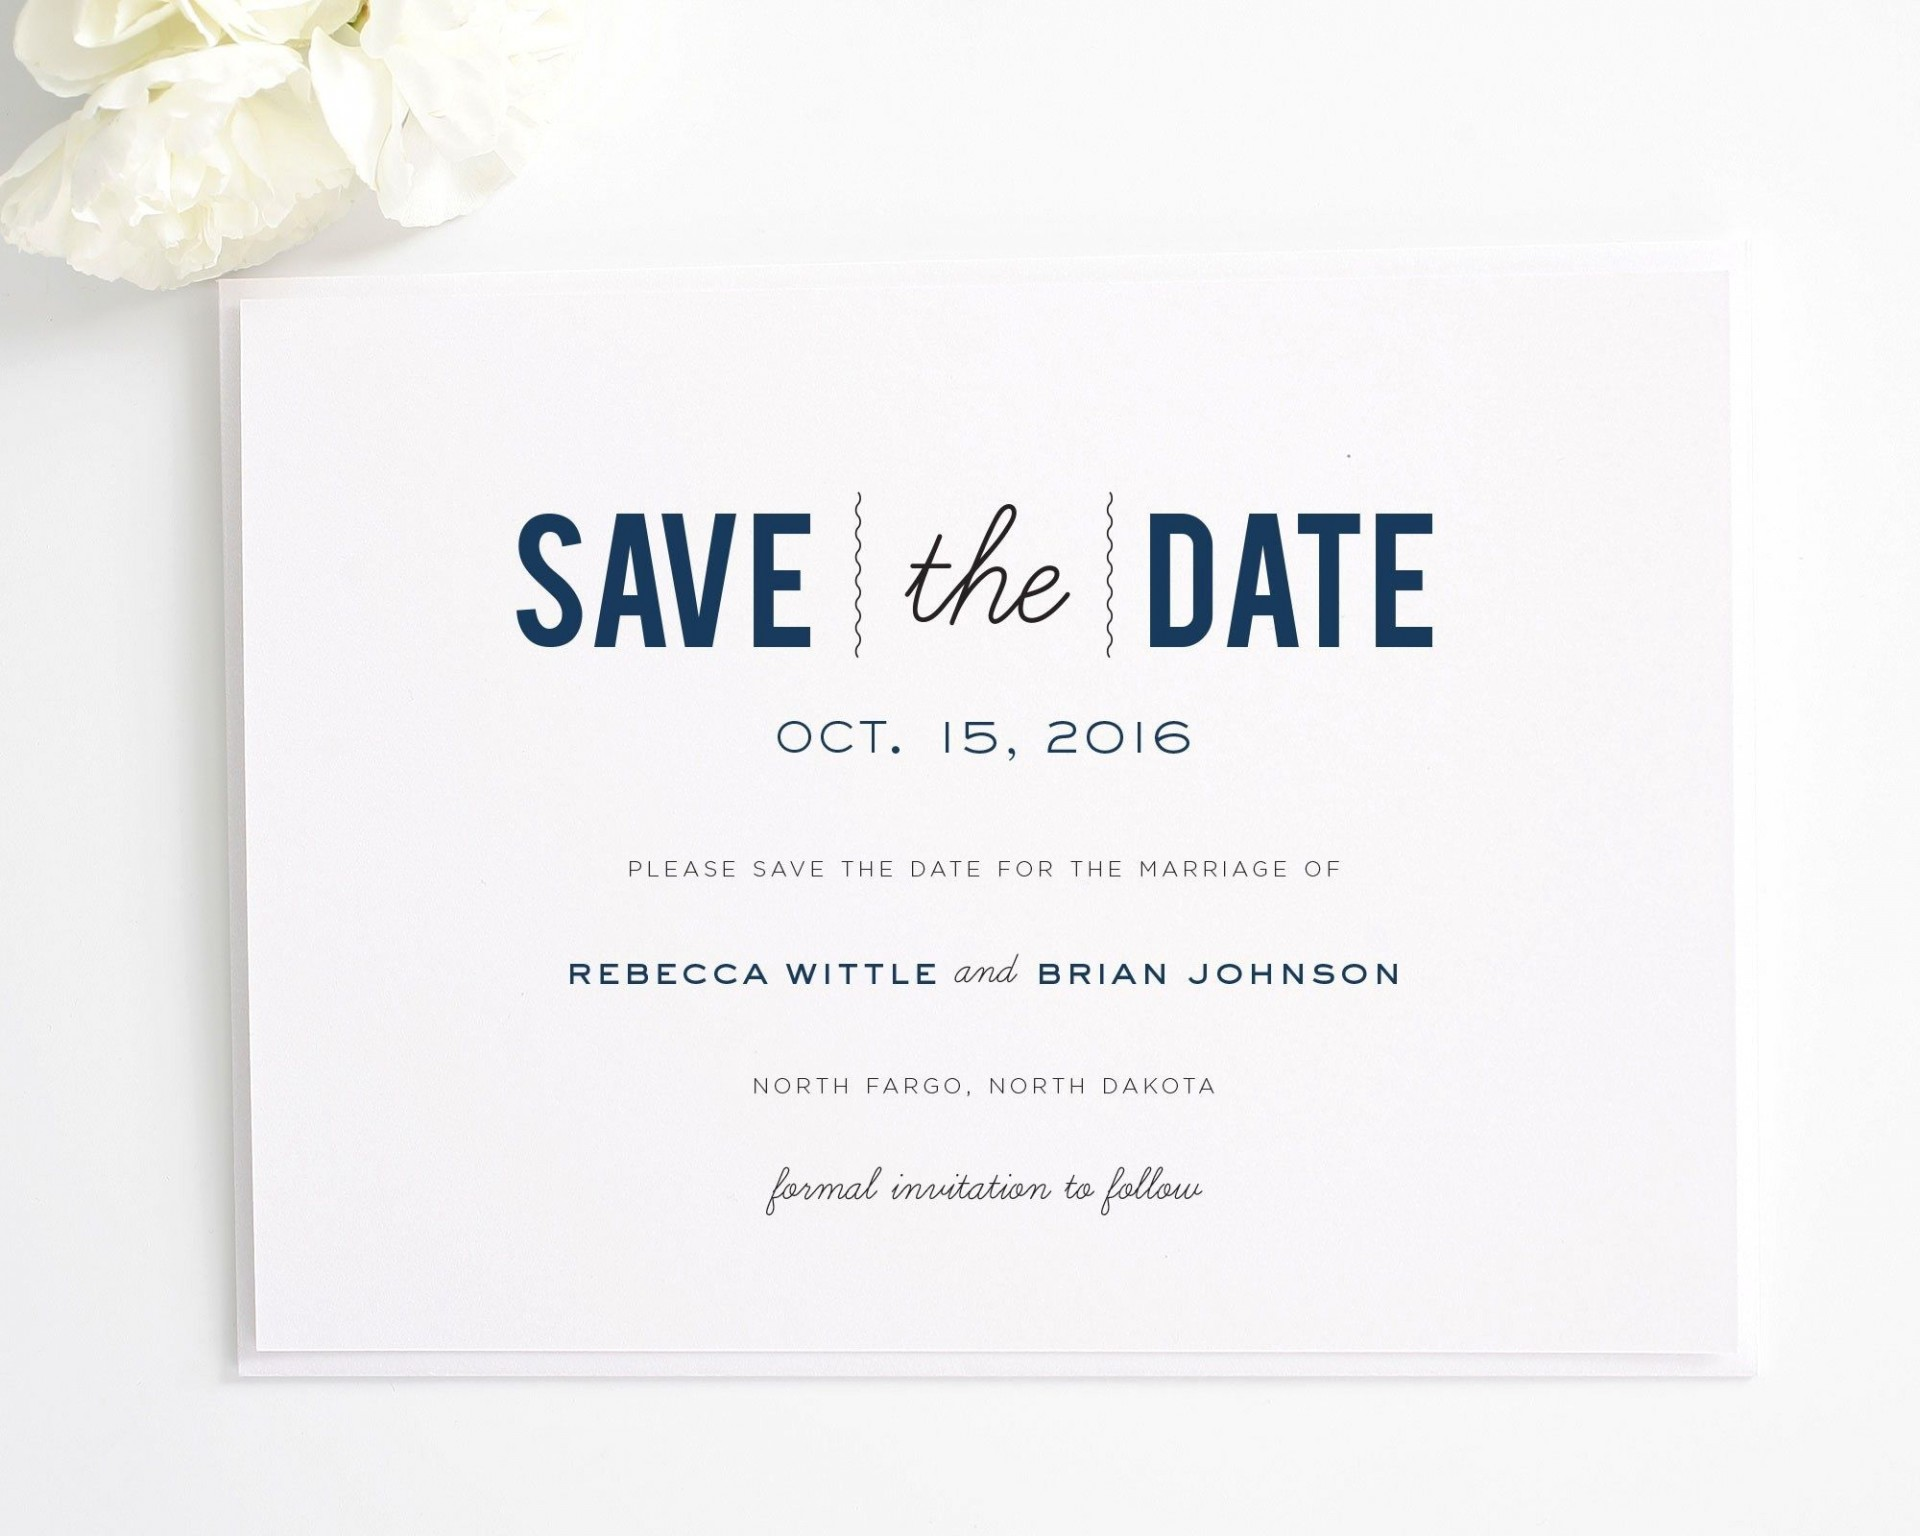 001 Archaicawful Save The Date Template Word Highest Quality  Free Customizable For Holiday Party1920